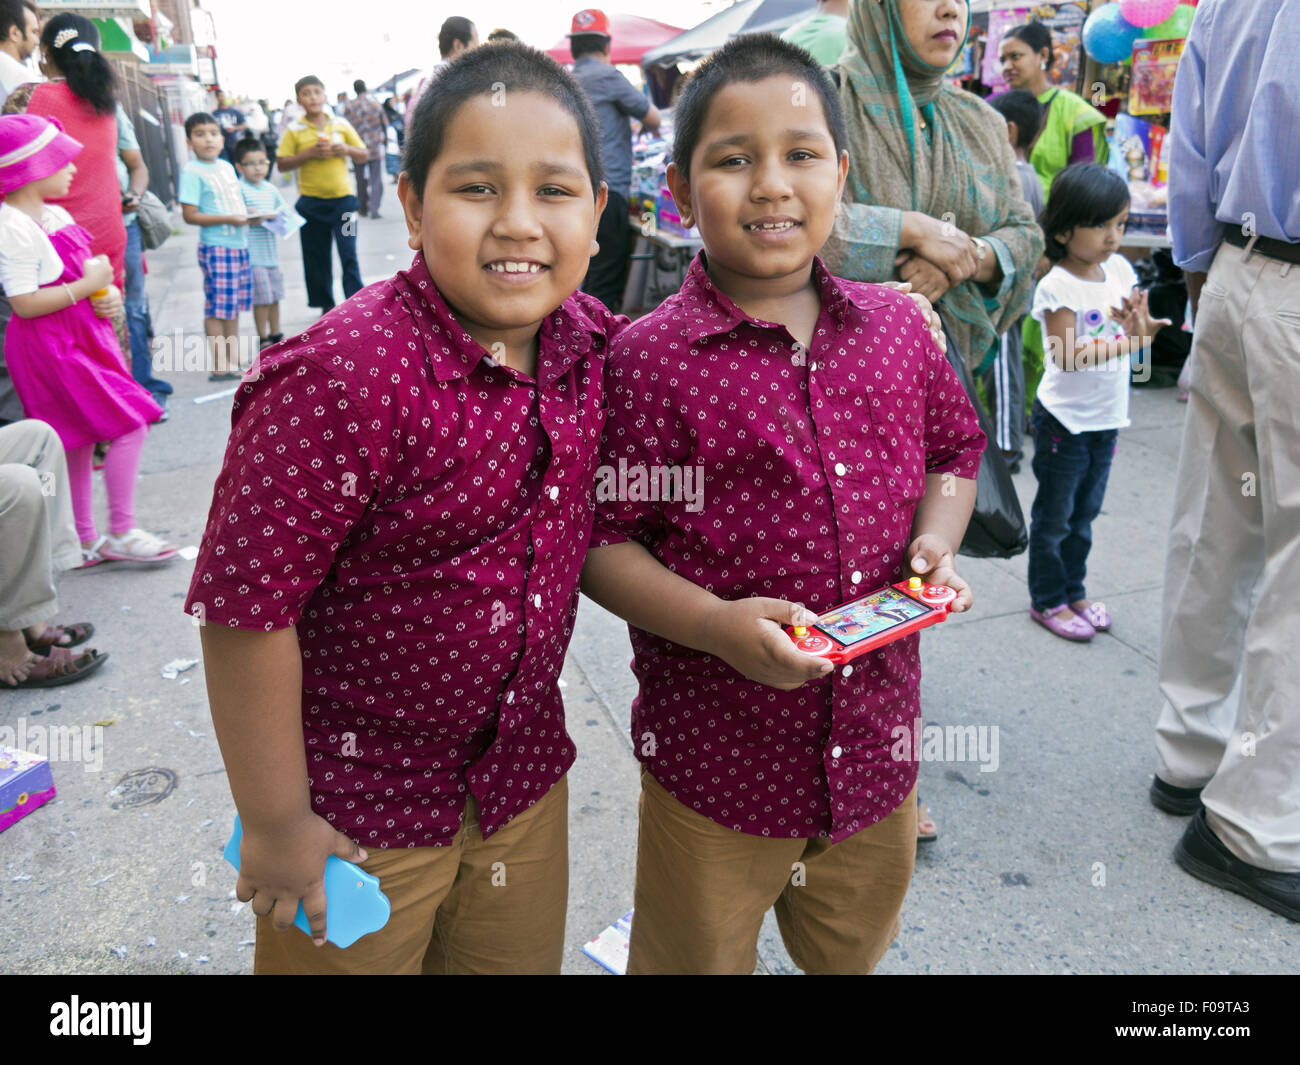 Eleven y.o. Identical twin boys at Bangladeshi street fair in 'Little Bangladesh' in the Kensington section - Stock Image